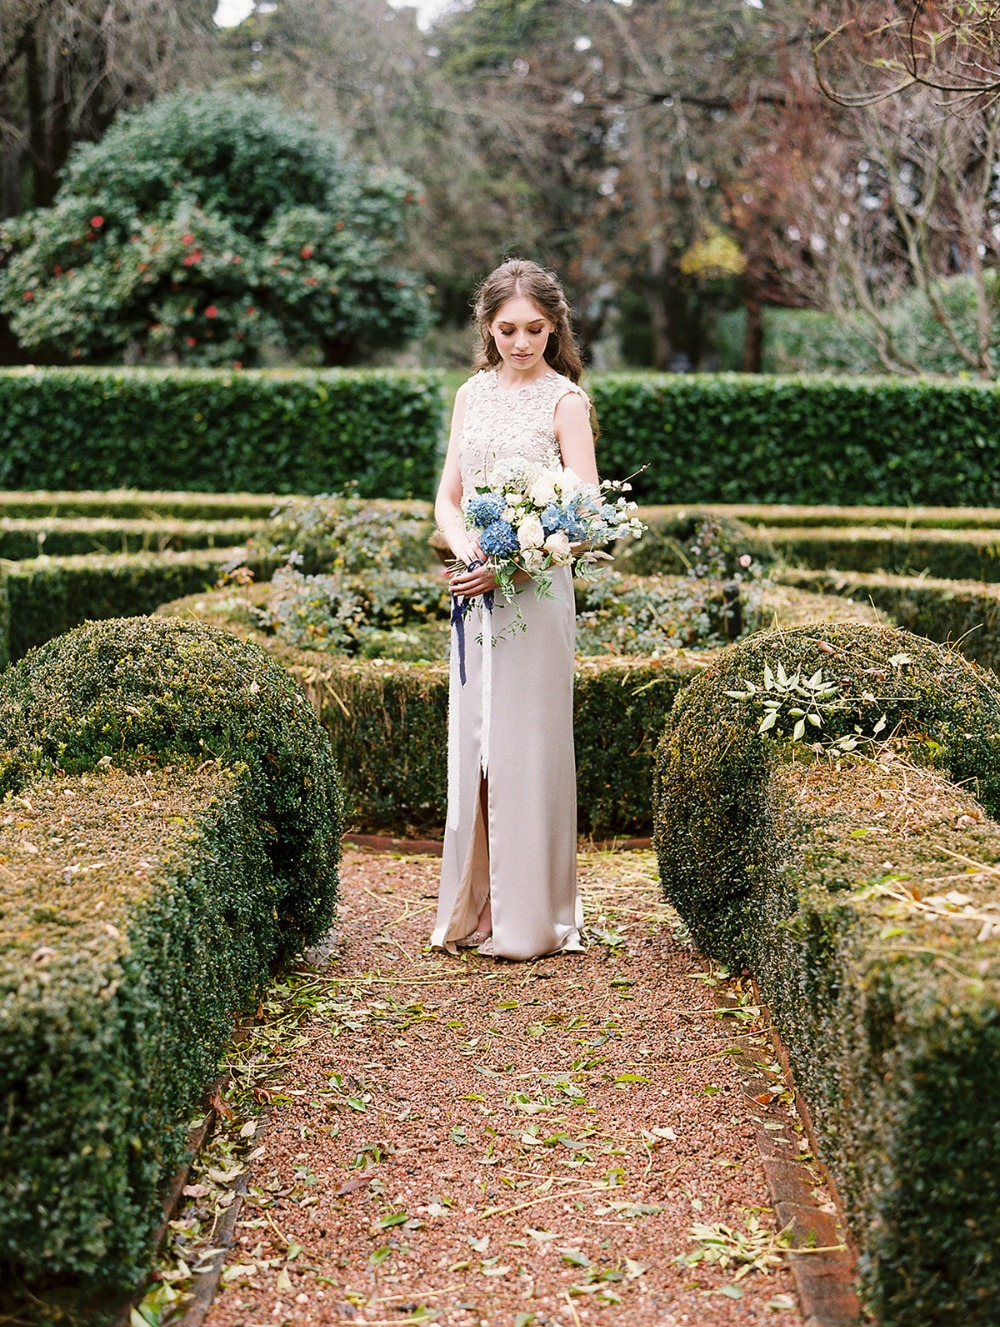 wedding maze bridal photo idea